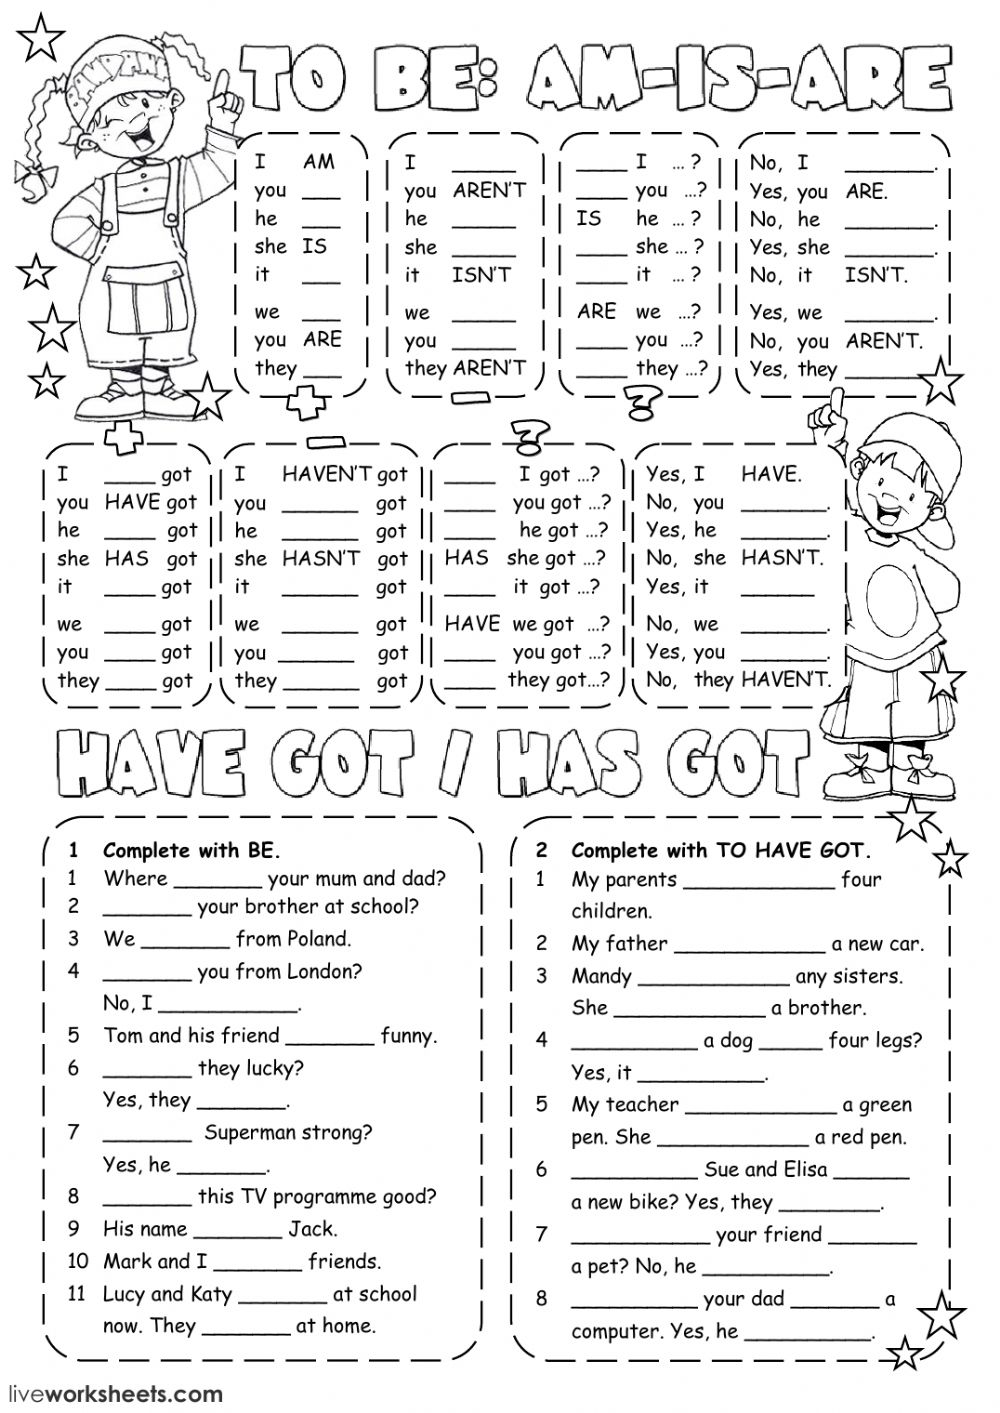 To be or to have got? - Interactive worksheet